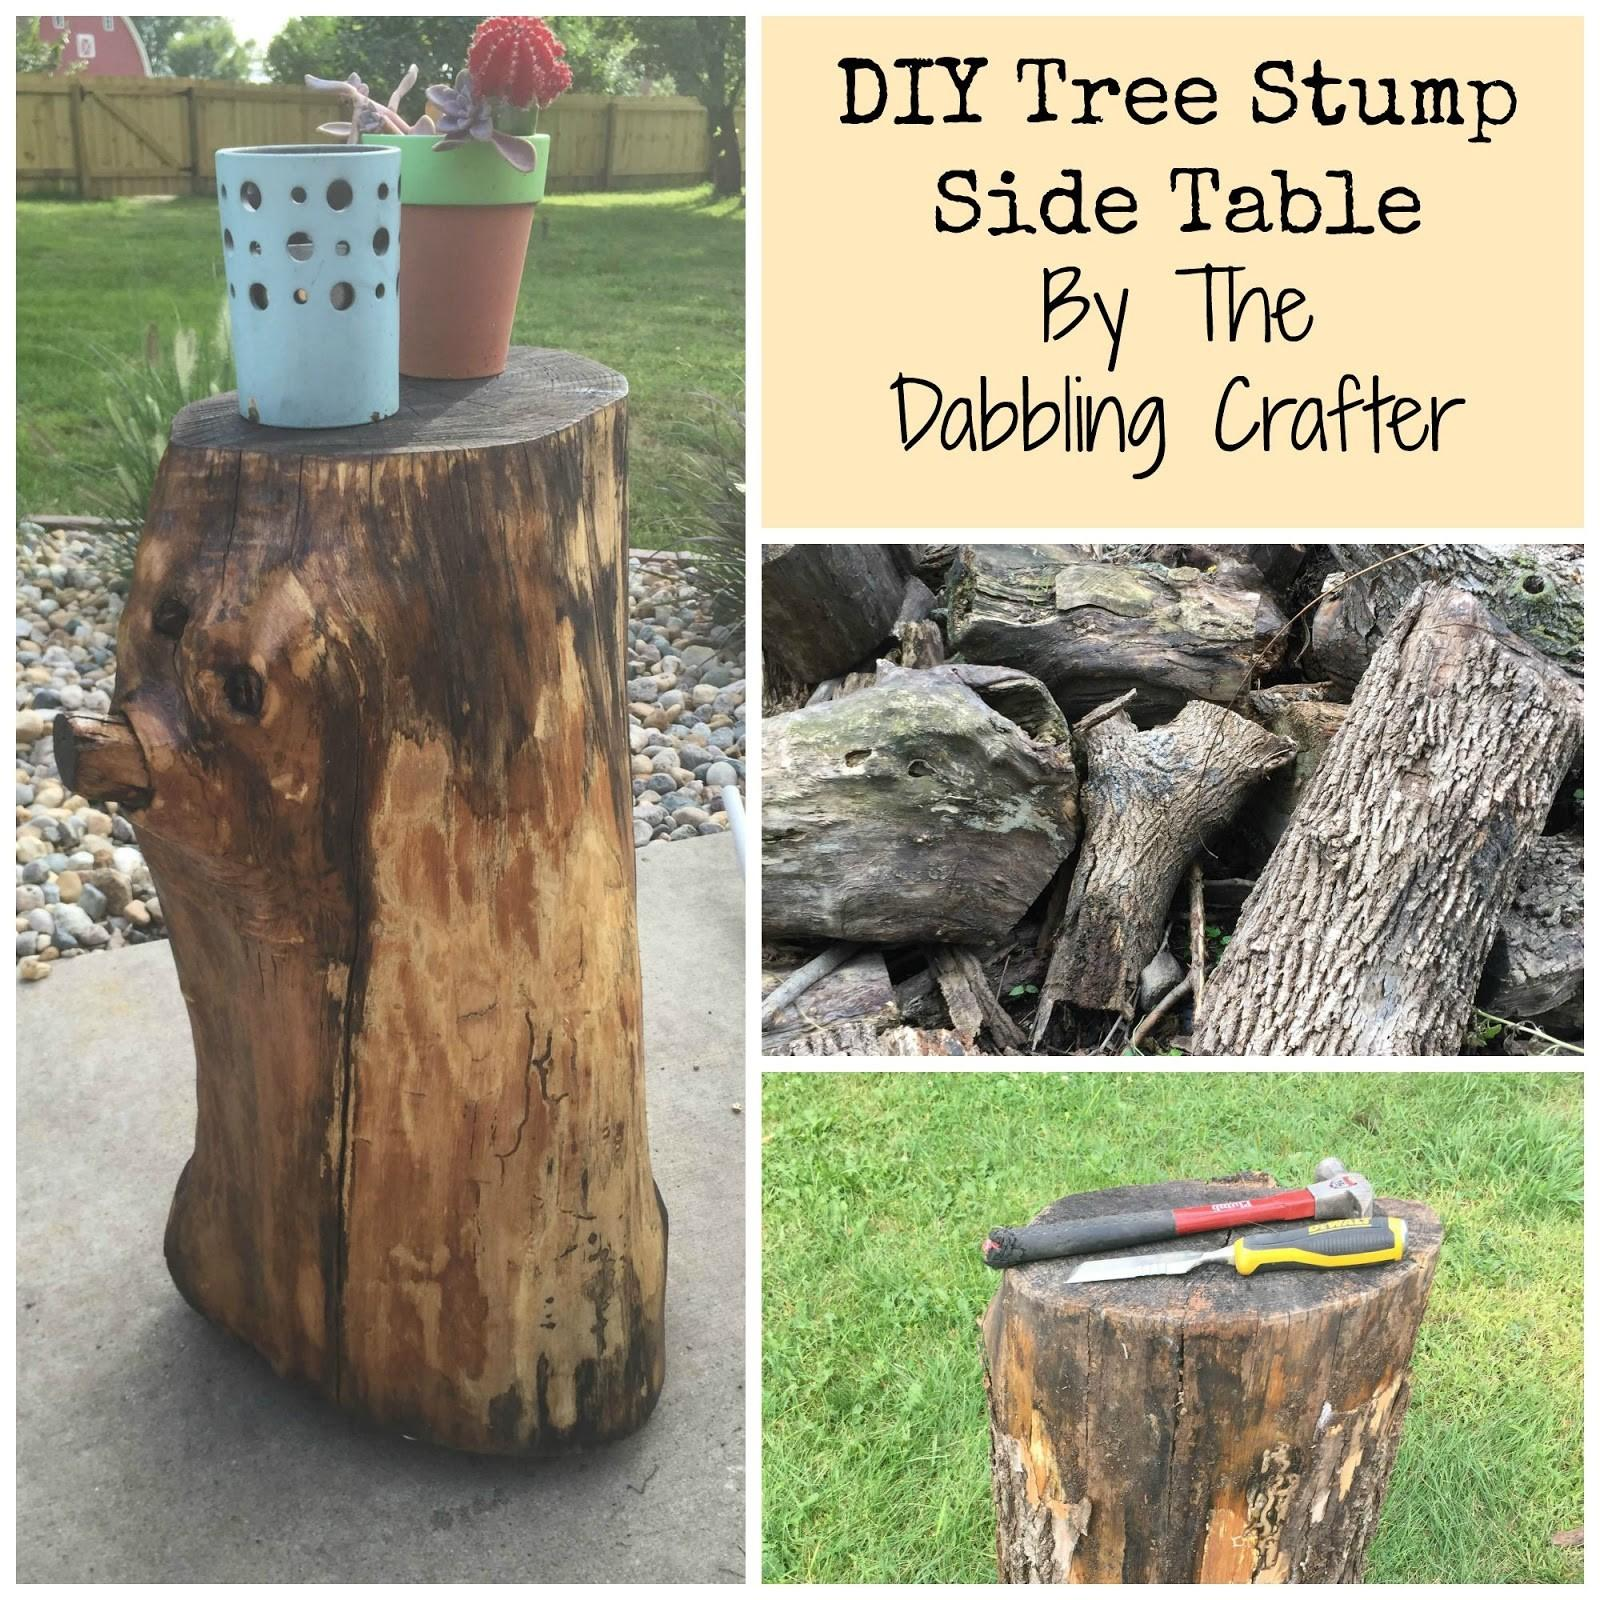 Dabbling Crafter Diy Sunday Tree Stump Side Table